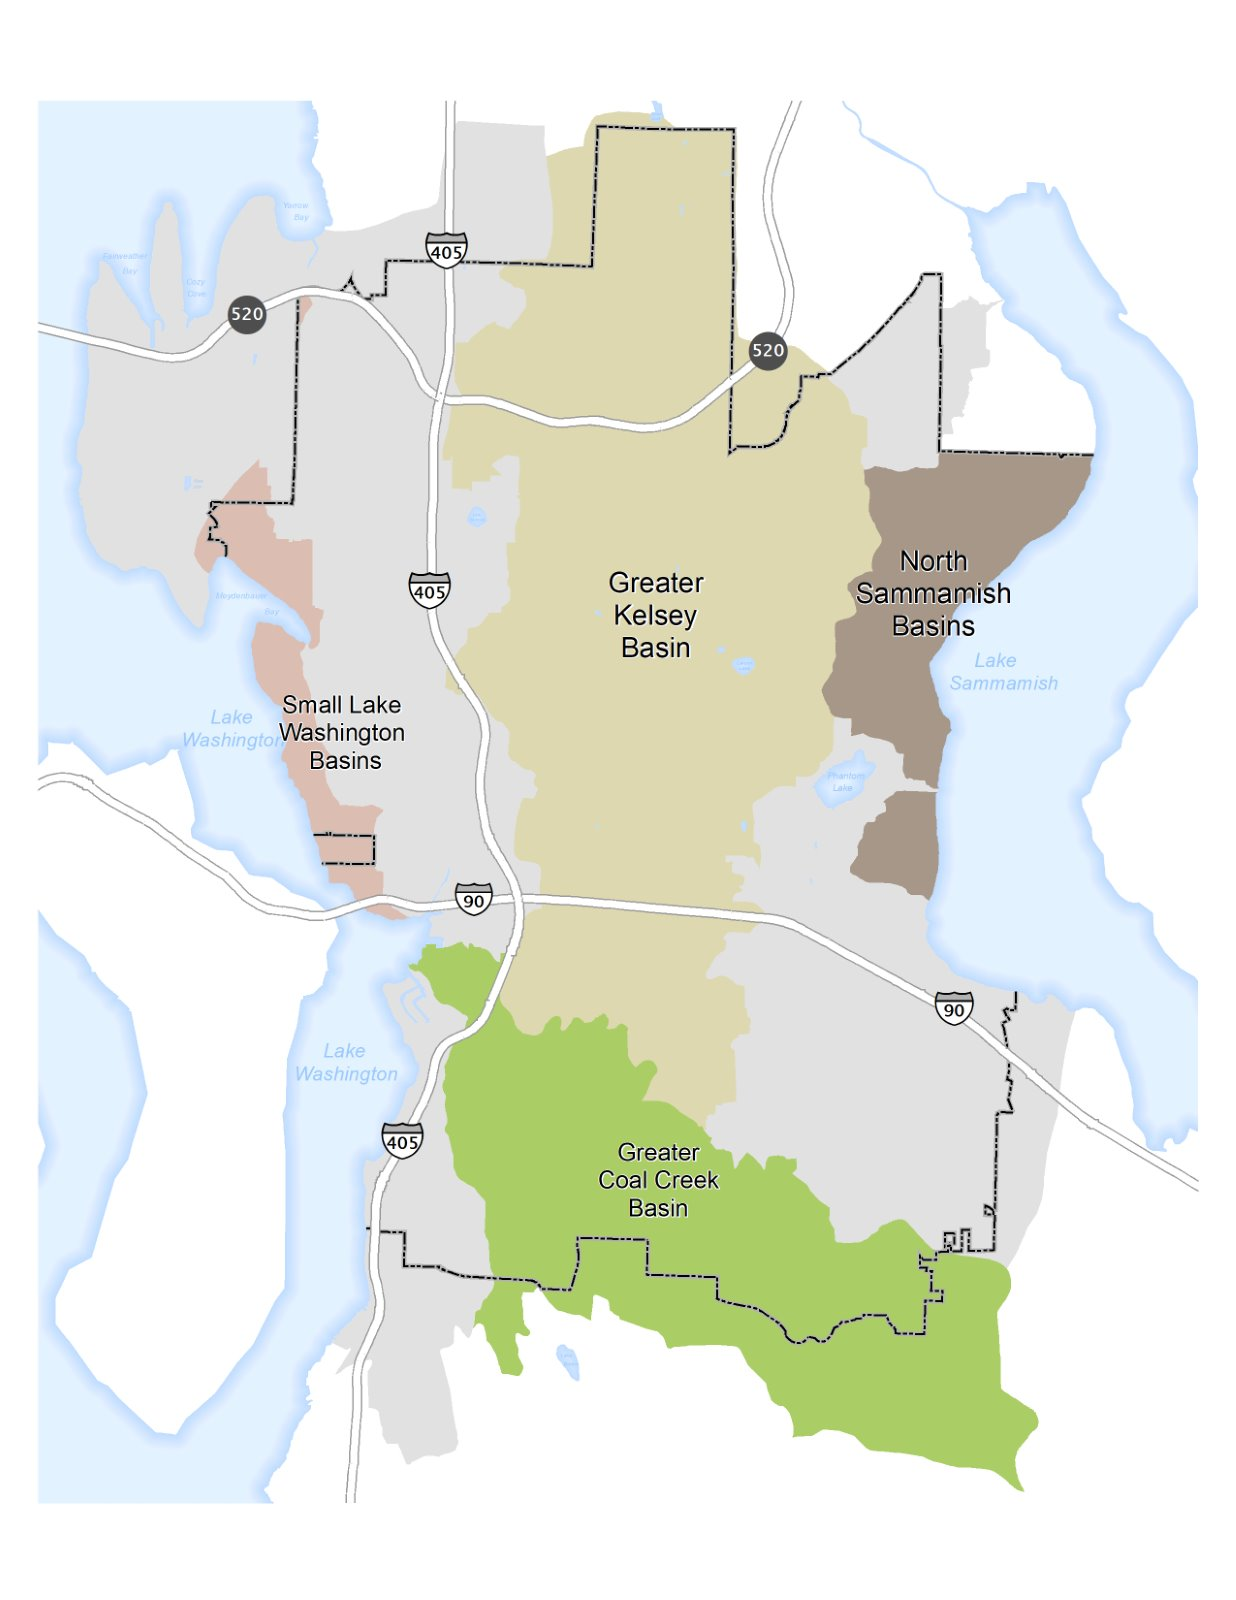 City of Bellevue Greater Combined Storm Drainage Basins Map